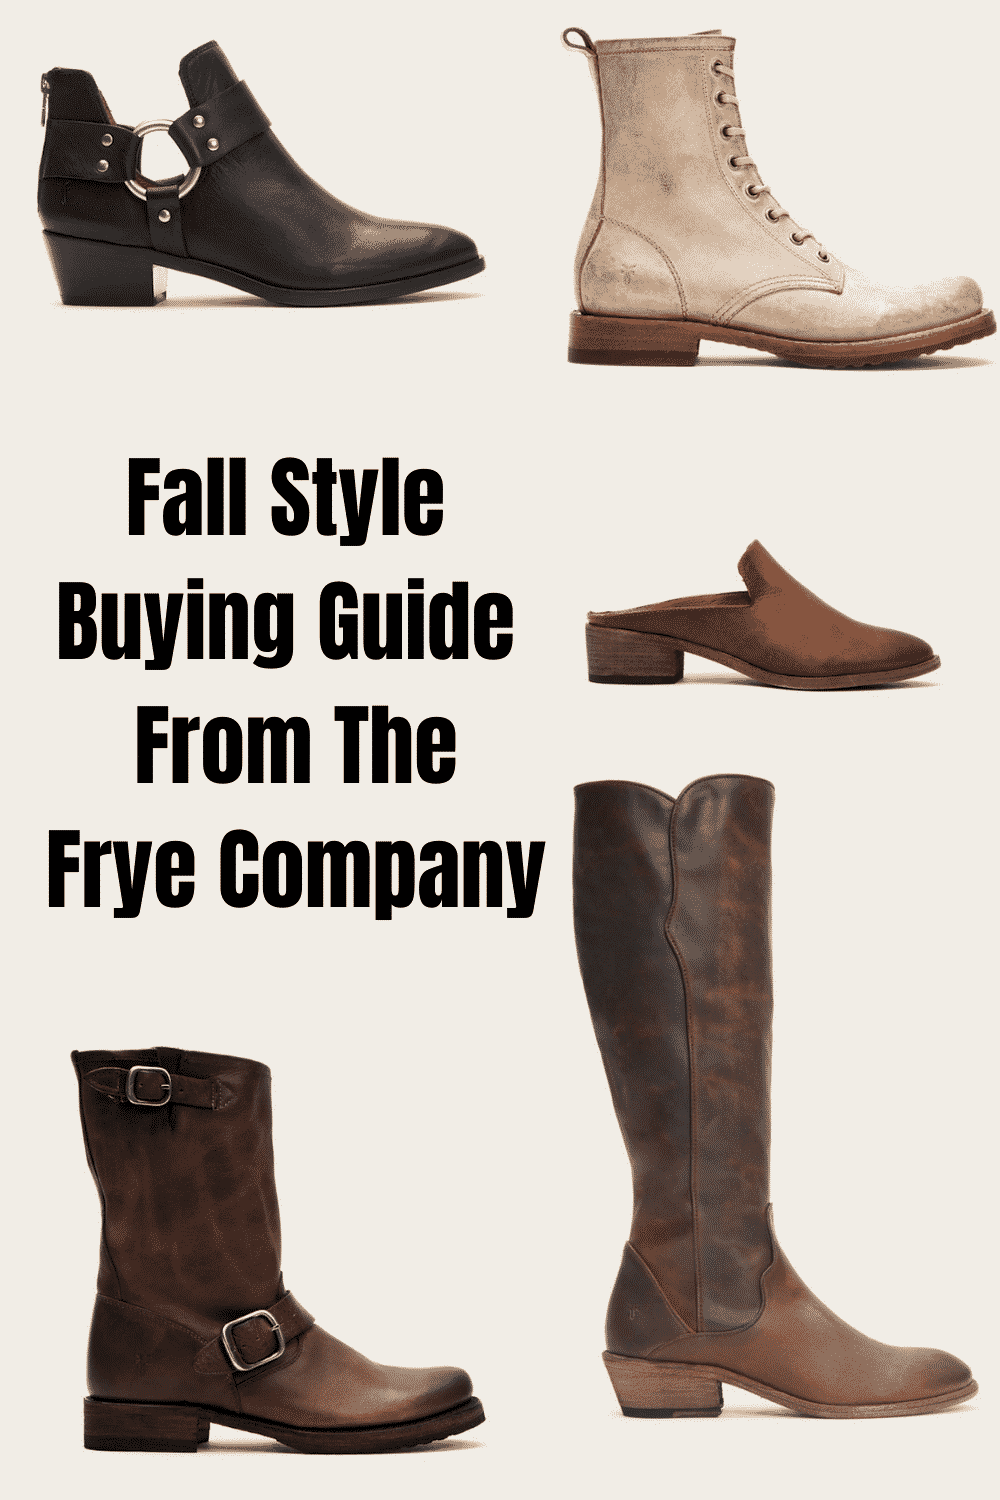 Fall must-have shoe buying guide from Frye